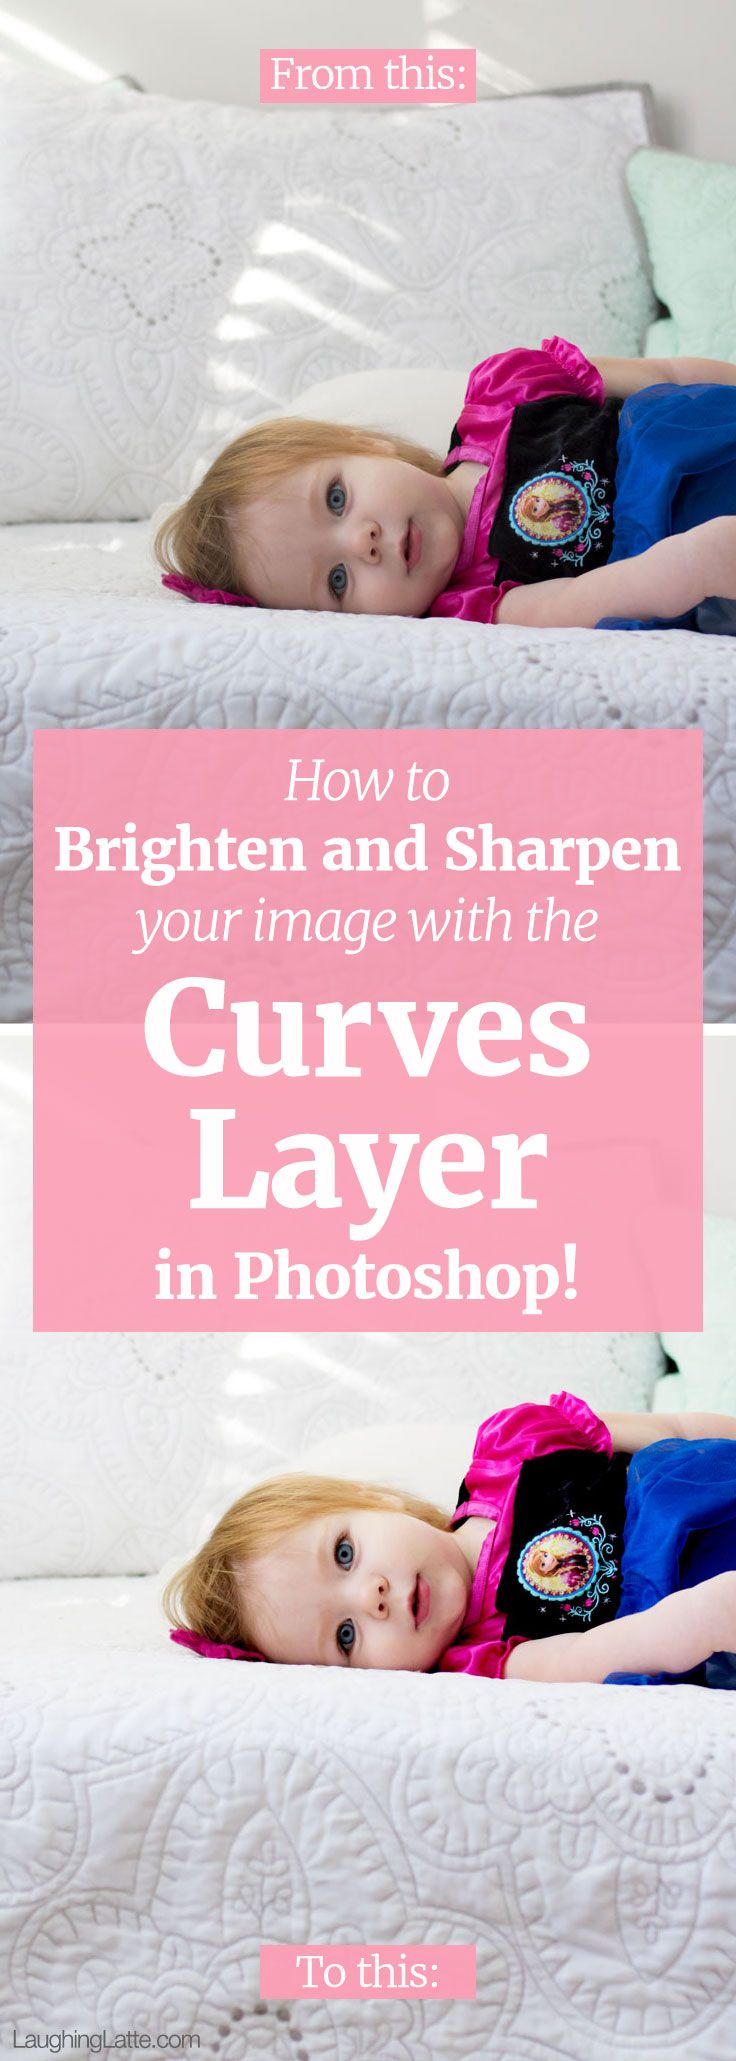 How to brighten images and sharpen details in your pictures using the curves layer in Photoshop!